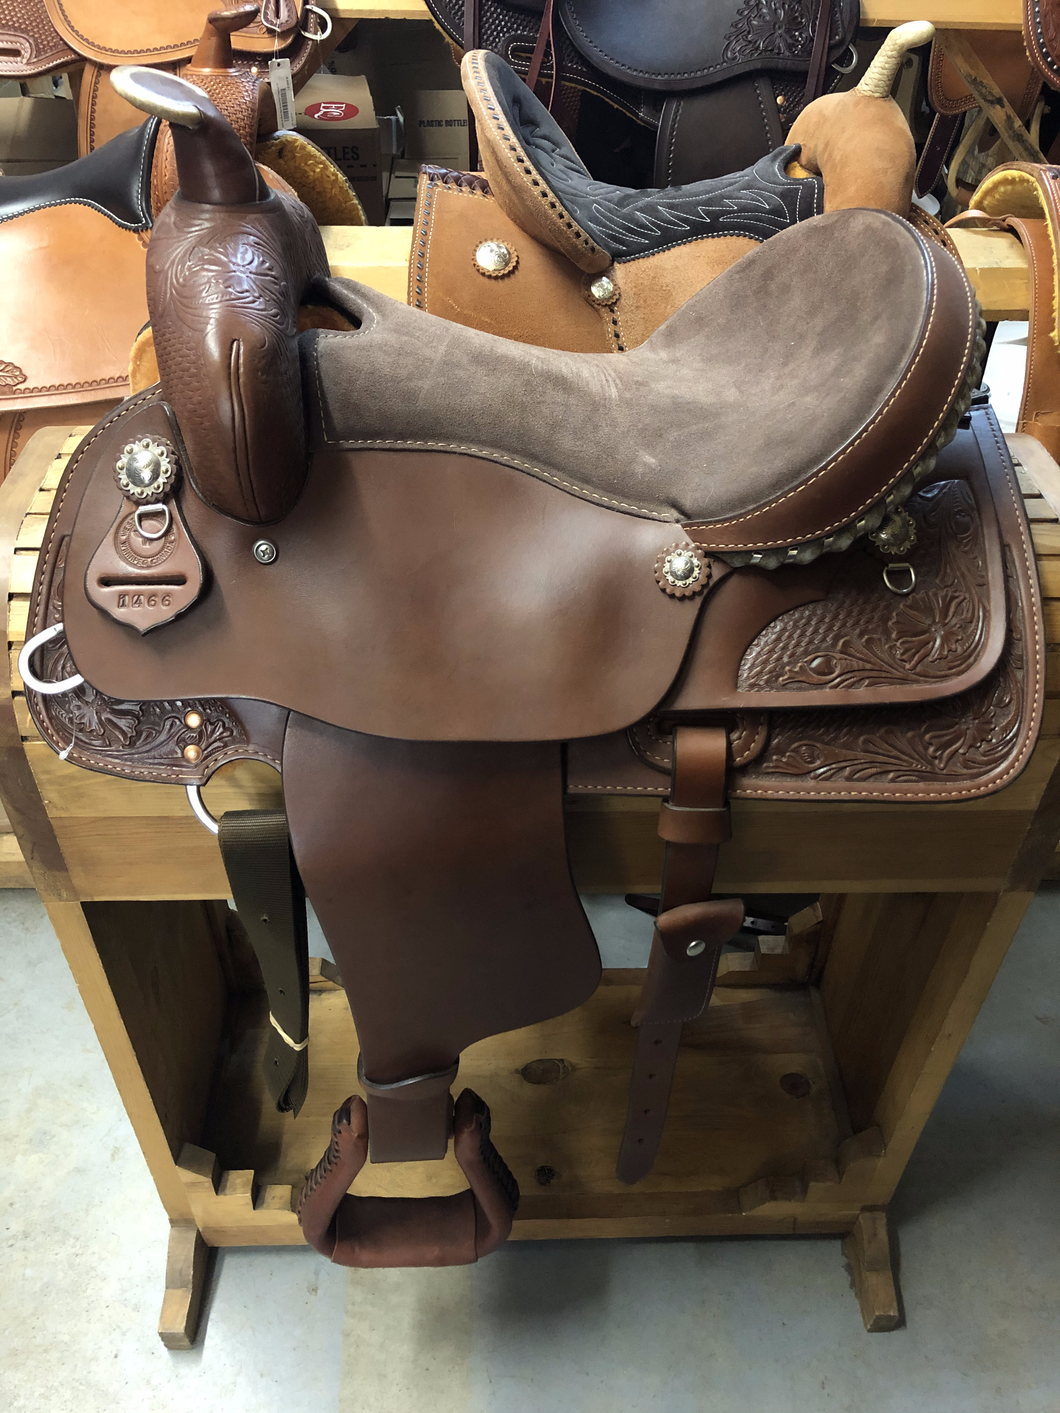 16'' Western Rawhide Trail Saddle - Brown